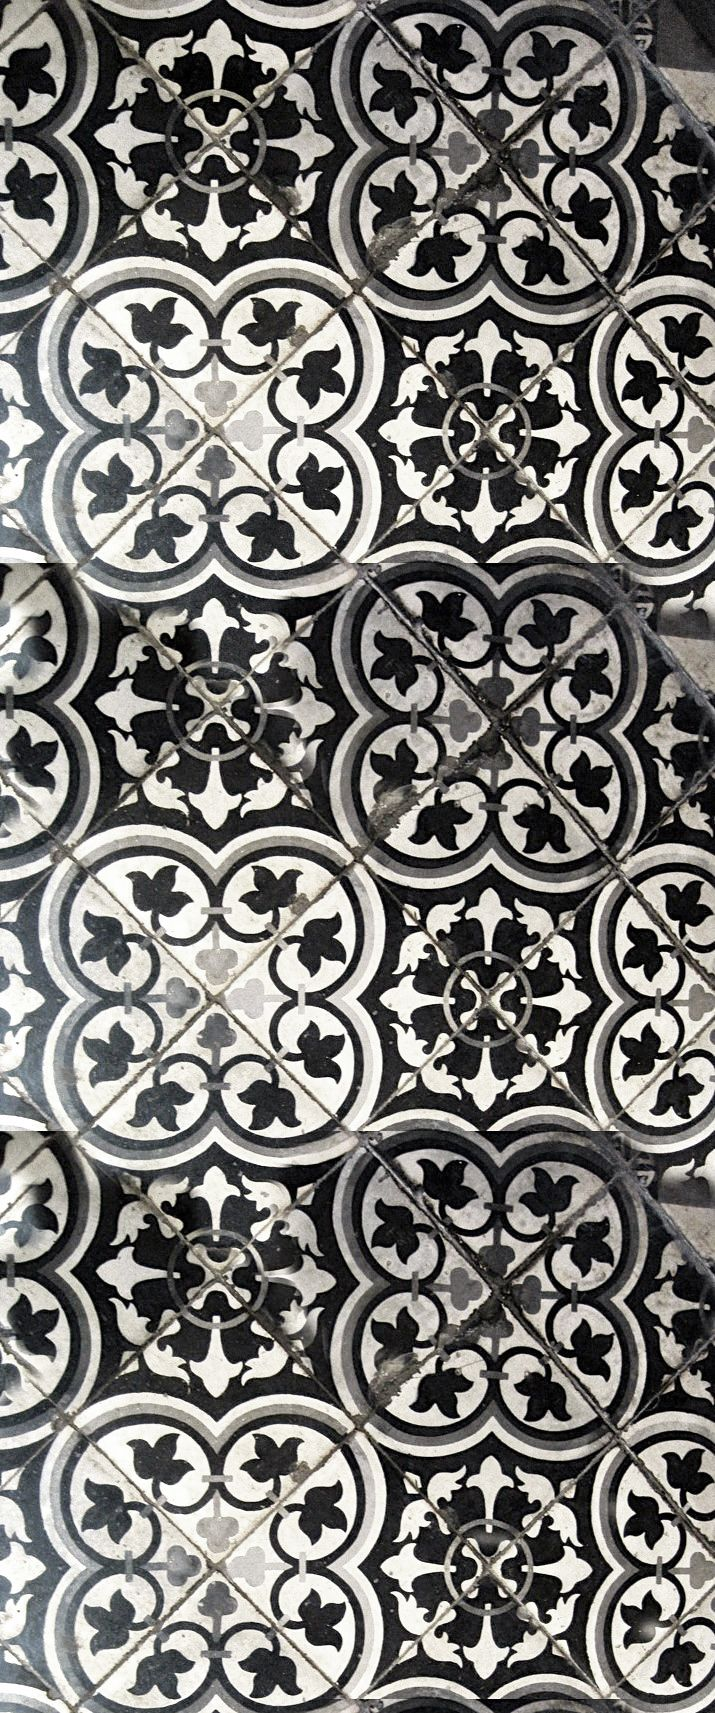 Tiles Motifs De Sol Carreaux Blancs Carreau De Ciment